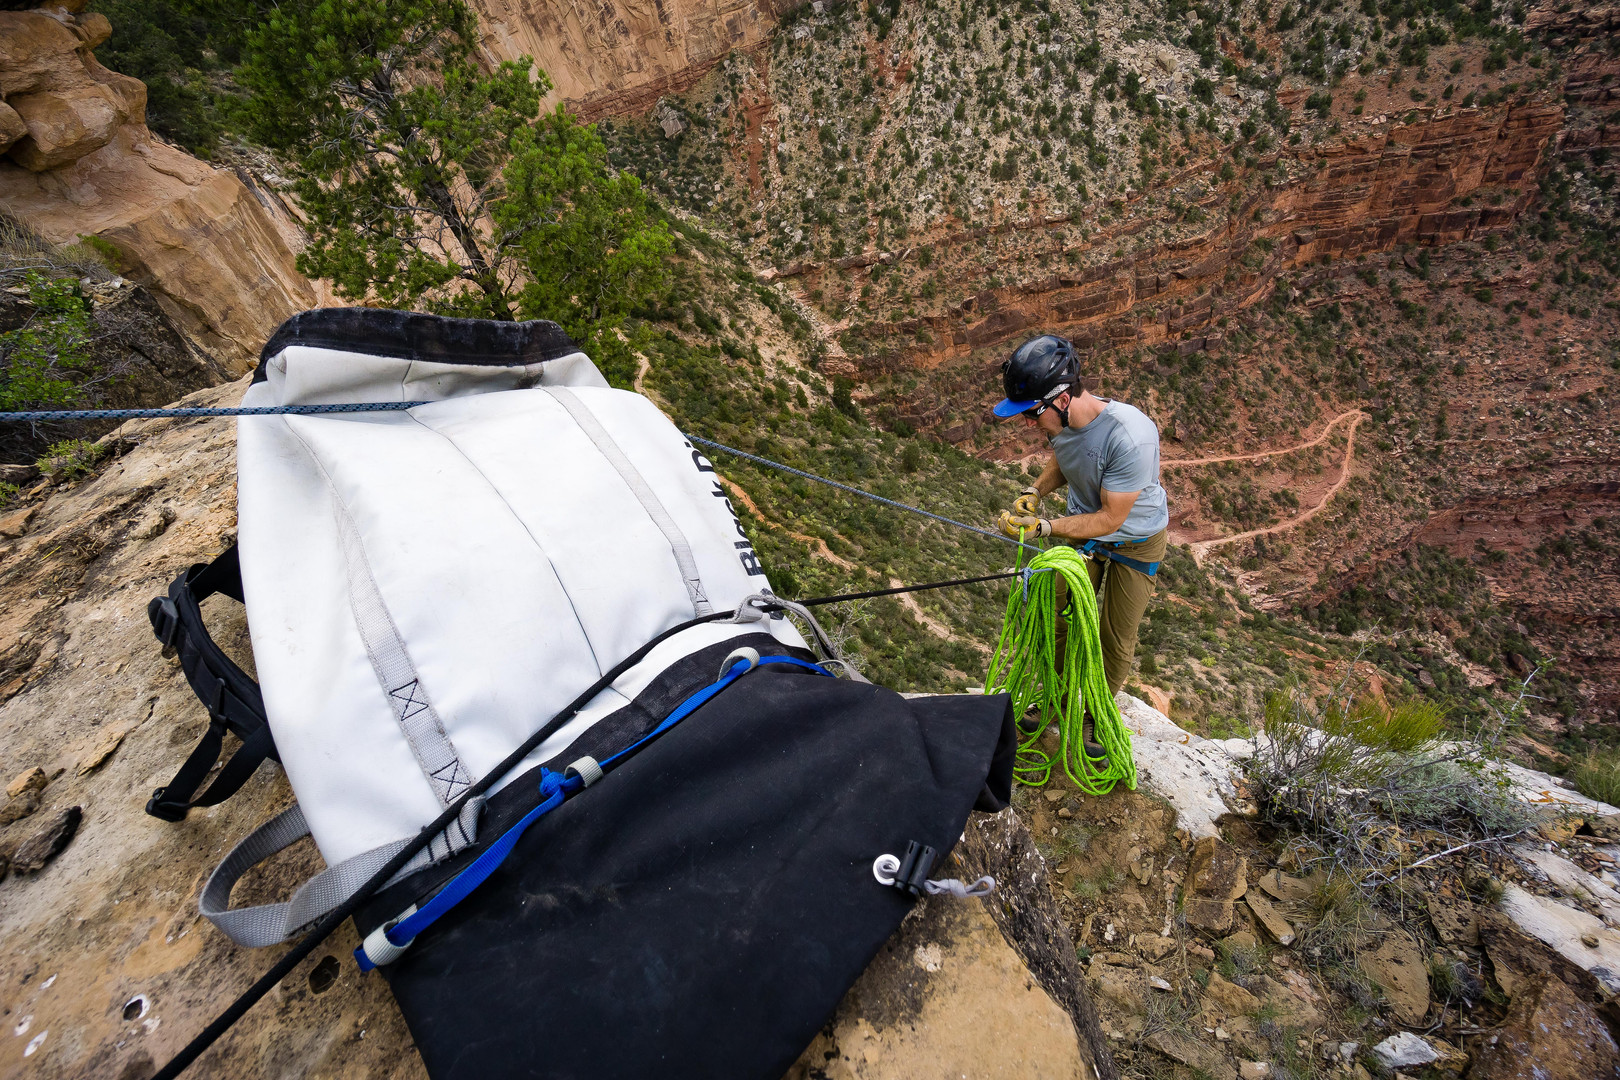 Solomon Krevans at the top of a new route in the Grand Canyon